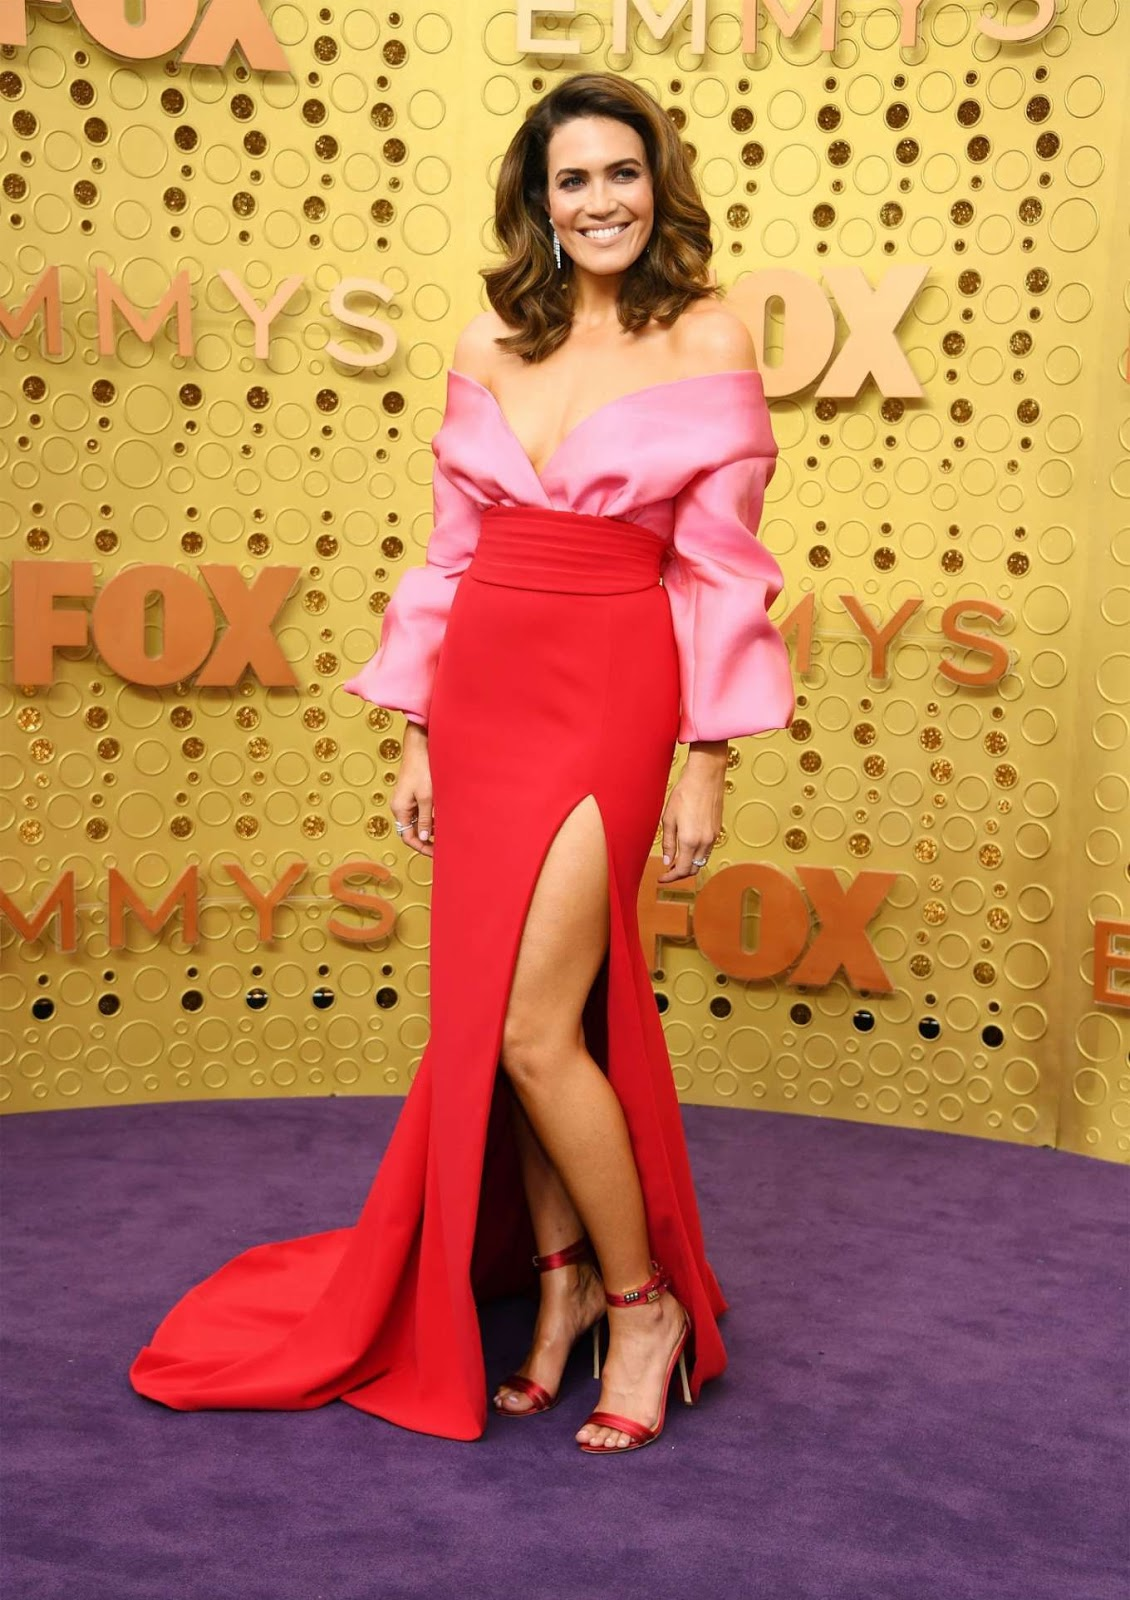 Mandy Moore bares ample cleavage at the 2019 Emmy Awards in Los Angeles